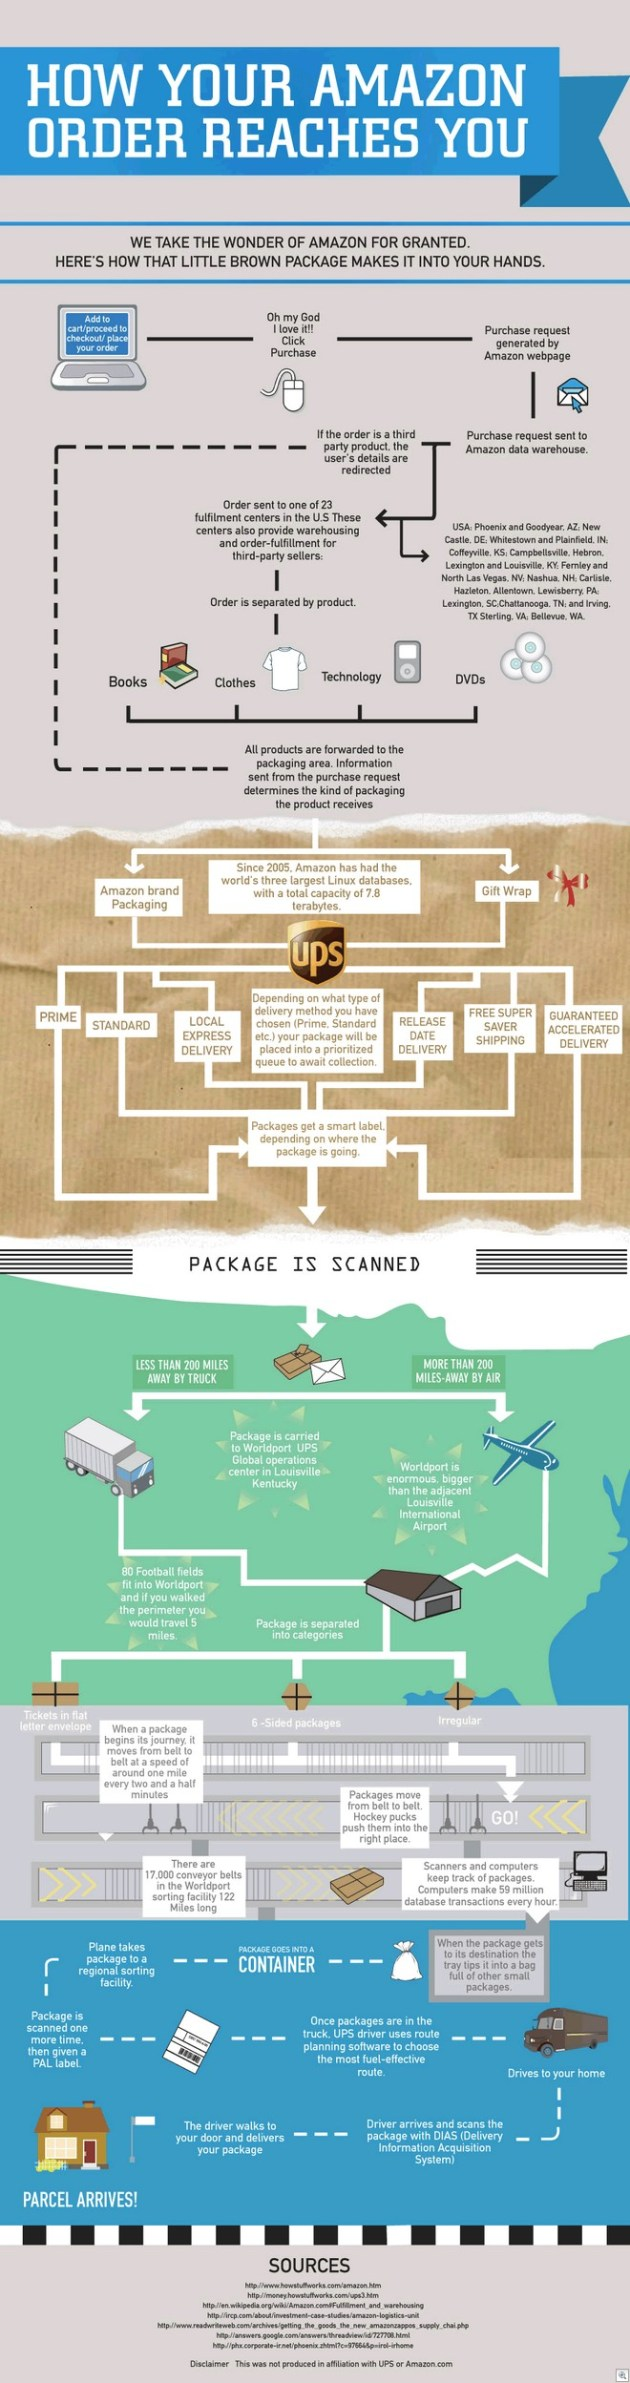 How-your-amazon-order-reaches-you